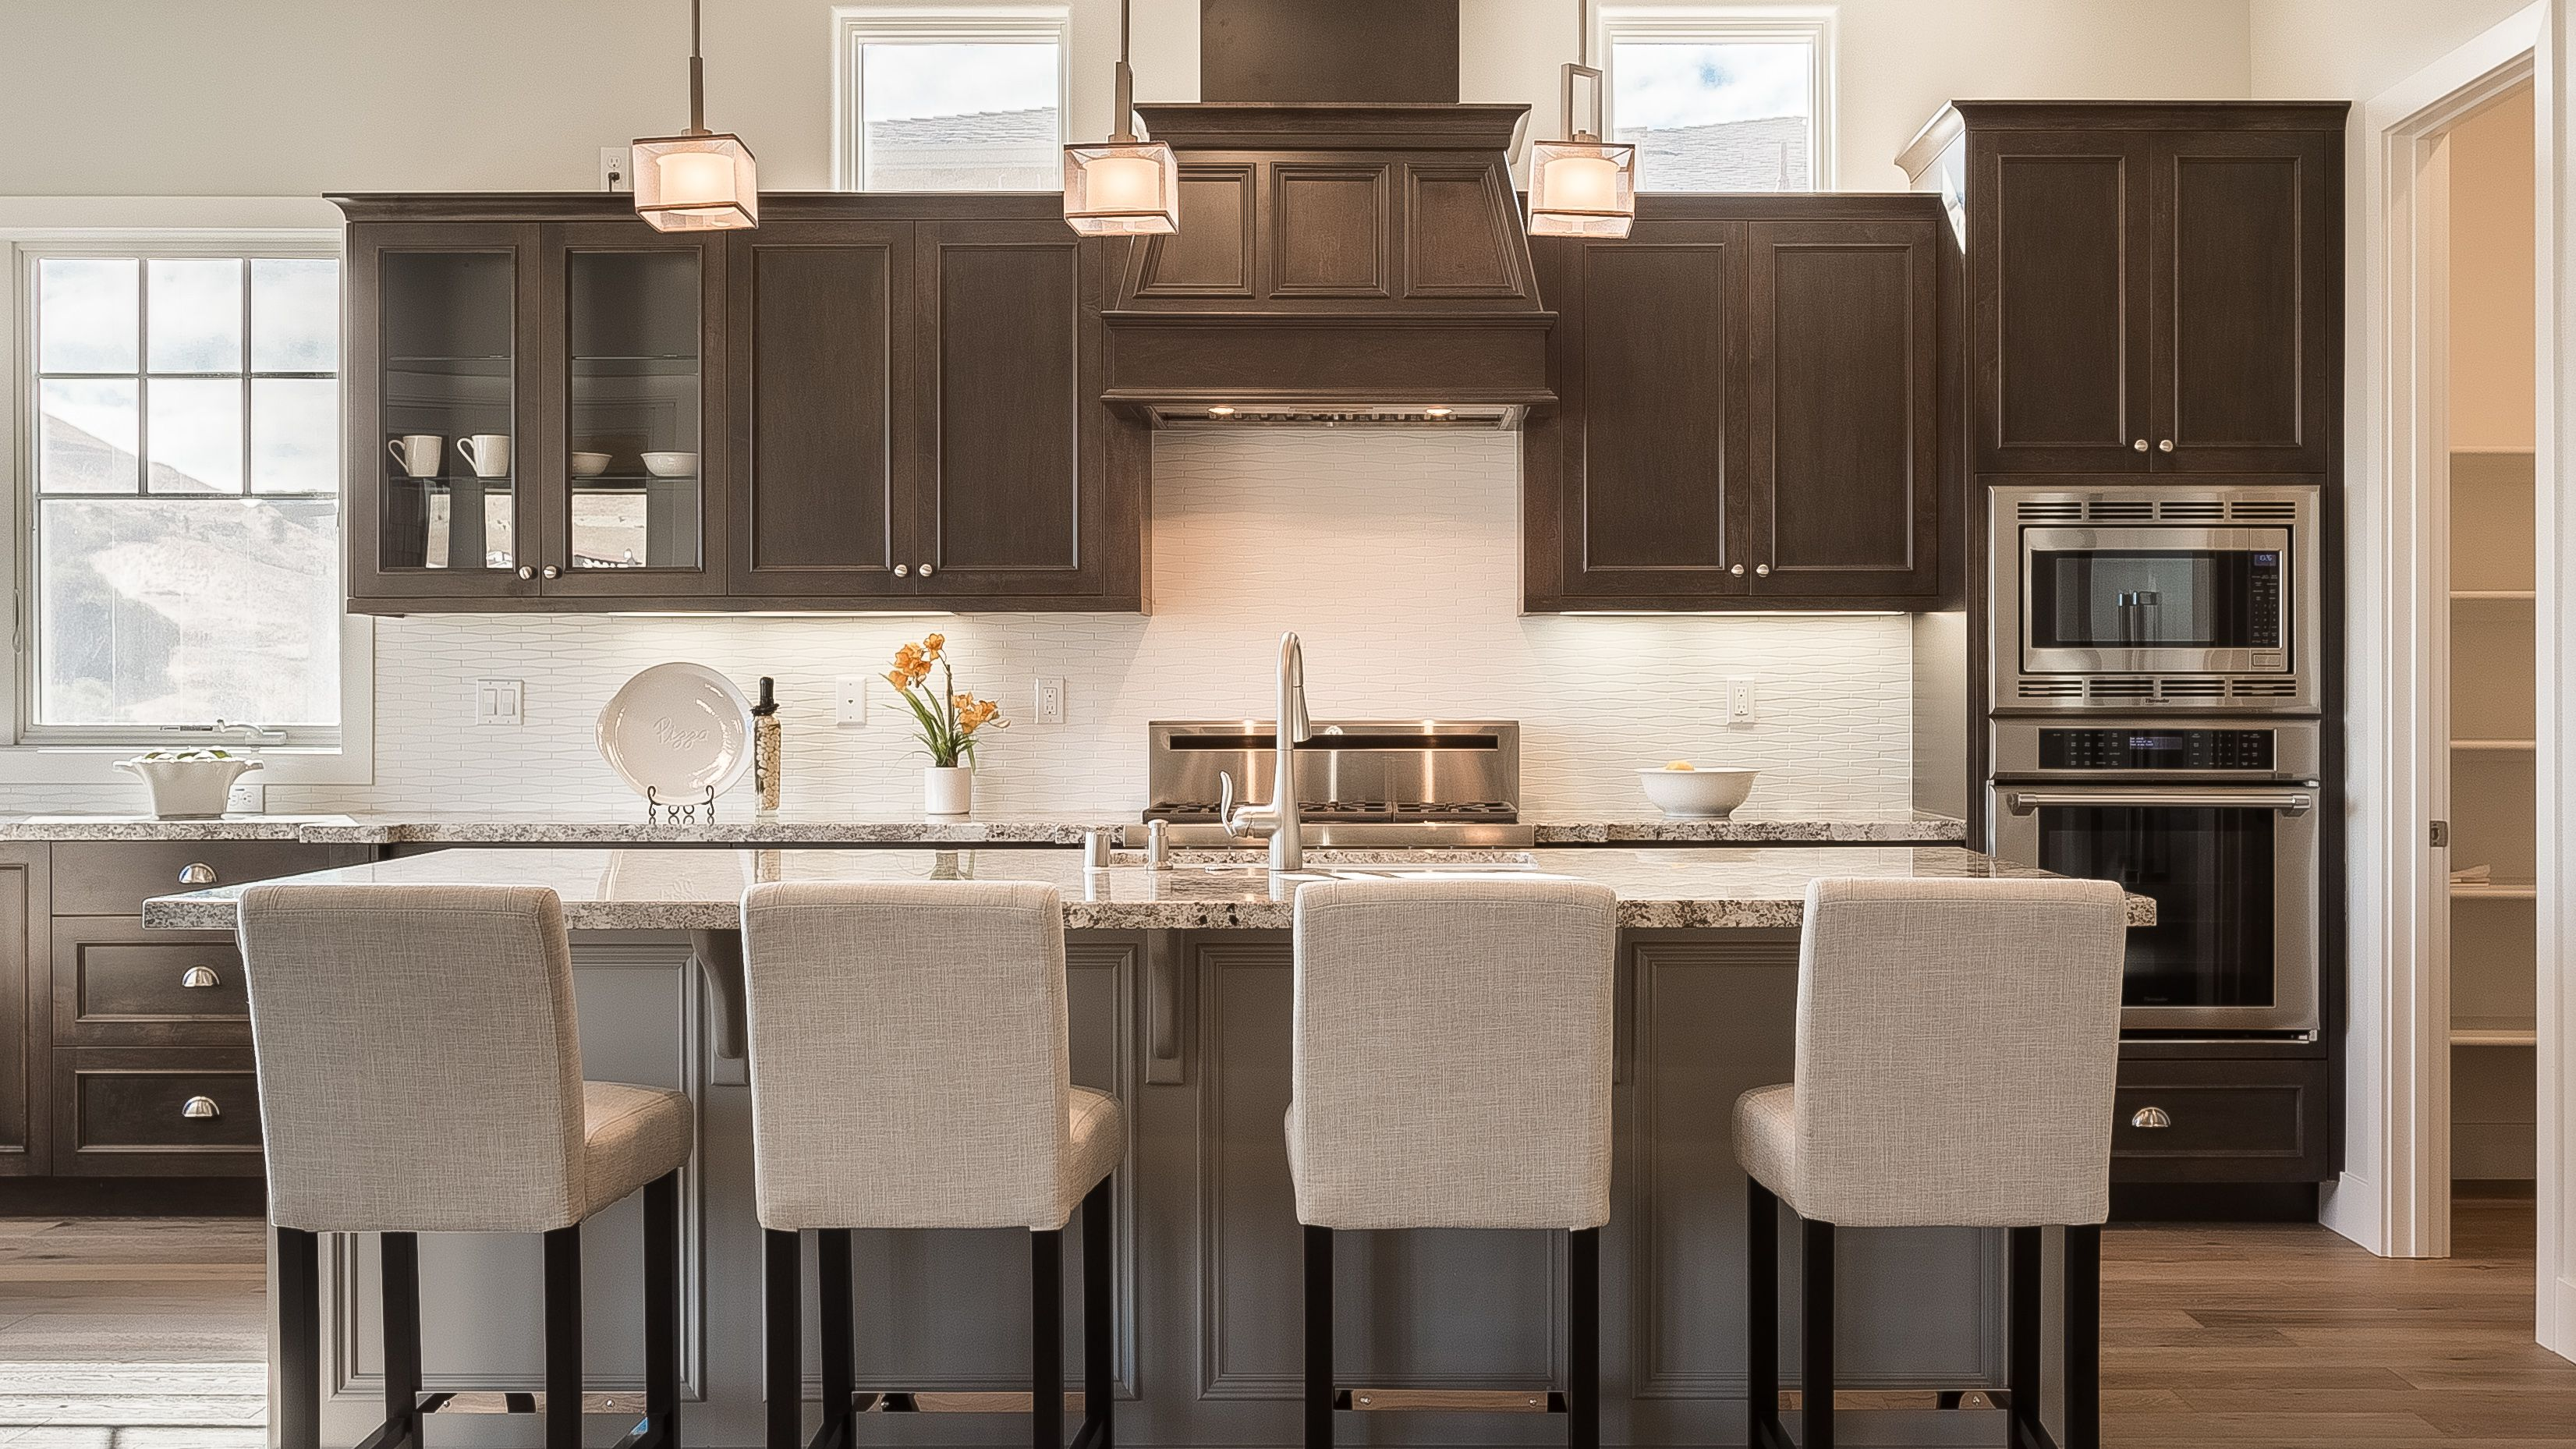 Kitchen featured in the Residence 2 Wilder Plan By Taylor Morrison in Oakland-Alameda, CA